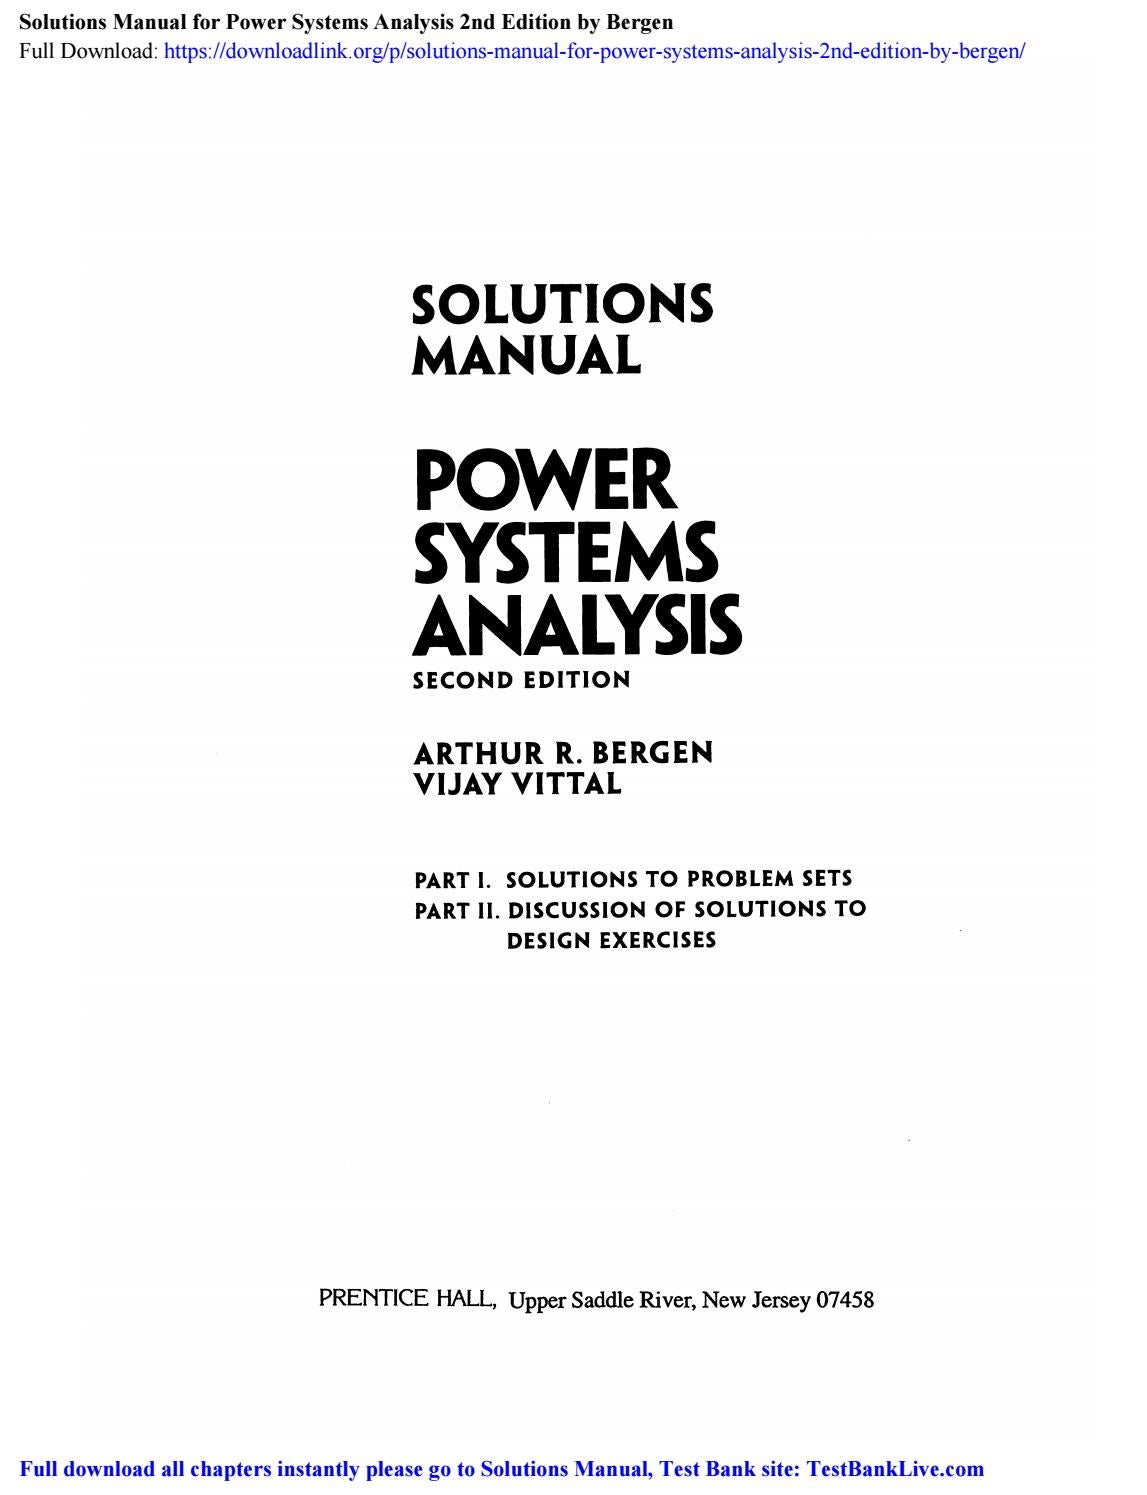 Solutions Manual For Power Systems Analysis 2nd Edition By Bergen By Scott Issuu